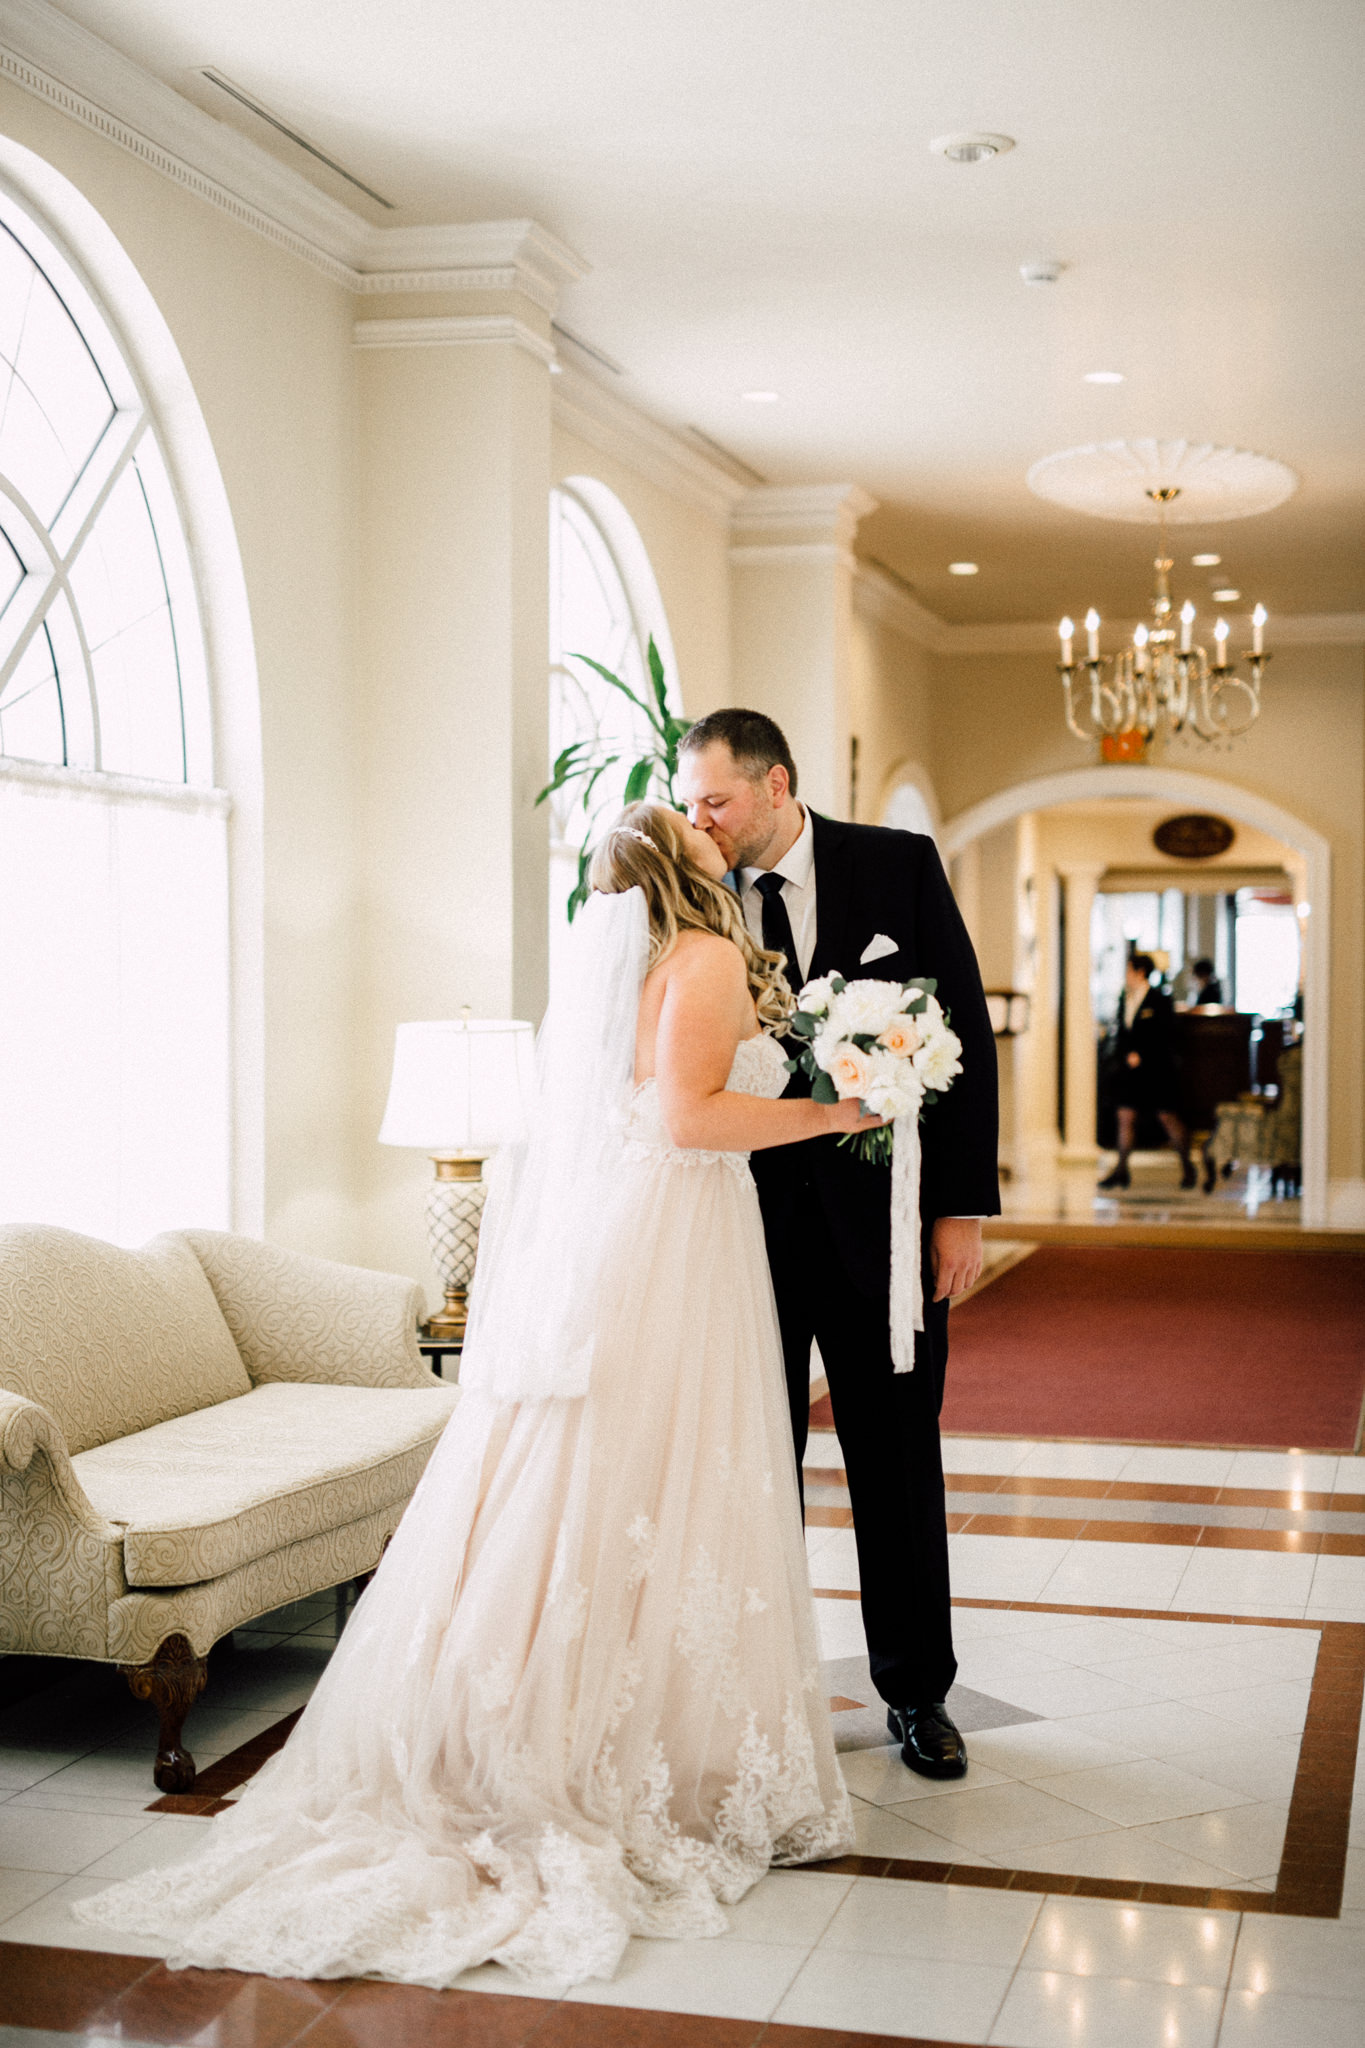 Queens-Landing-Niagara-on-the-Lake-Wedding-photography-by-Simply-Lace-011.JPG